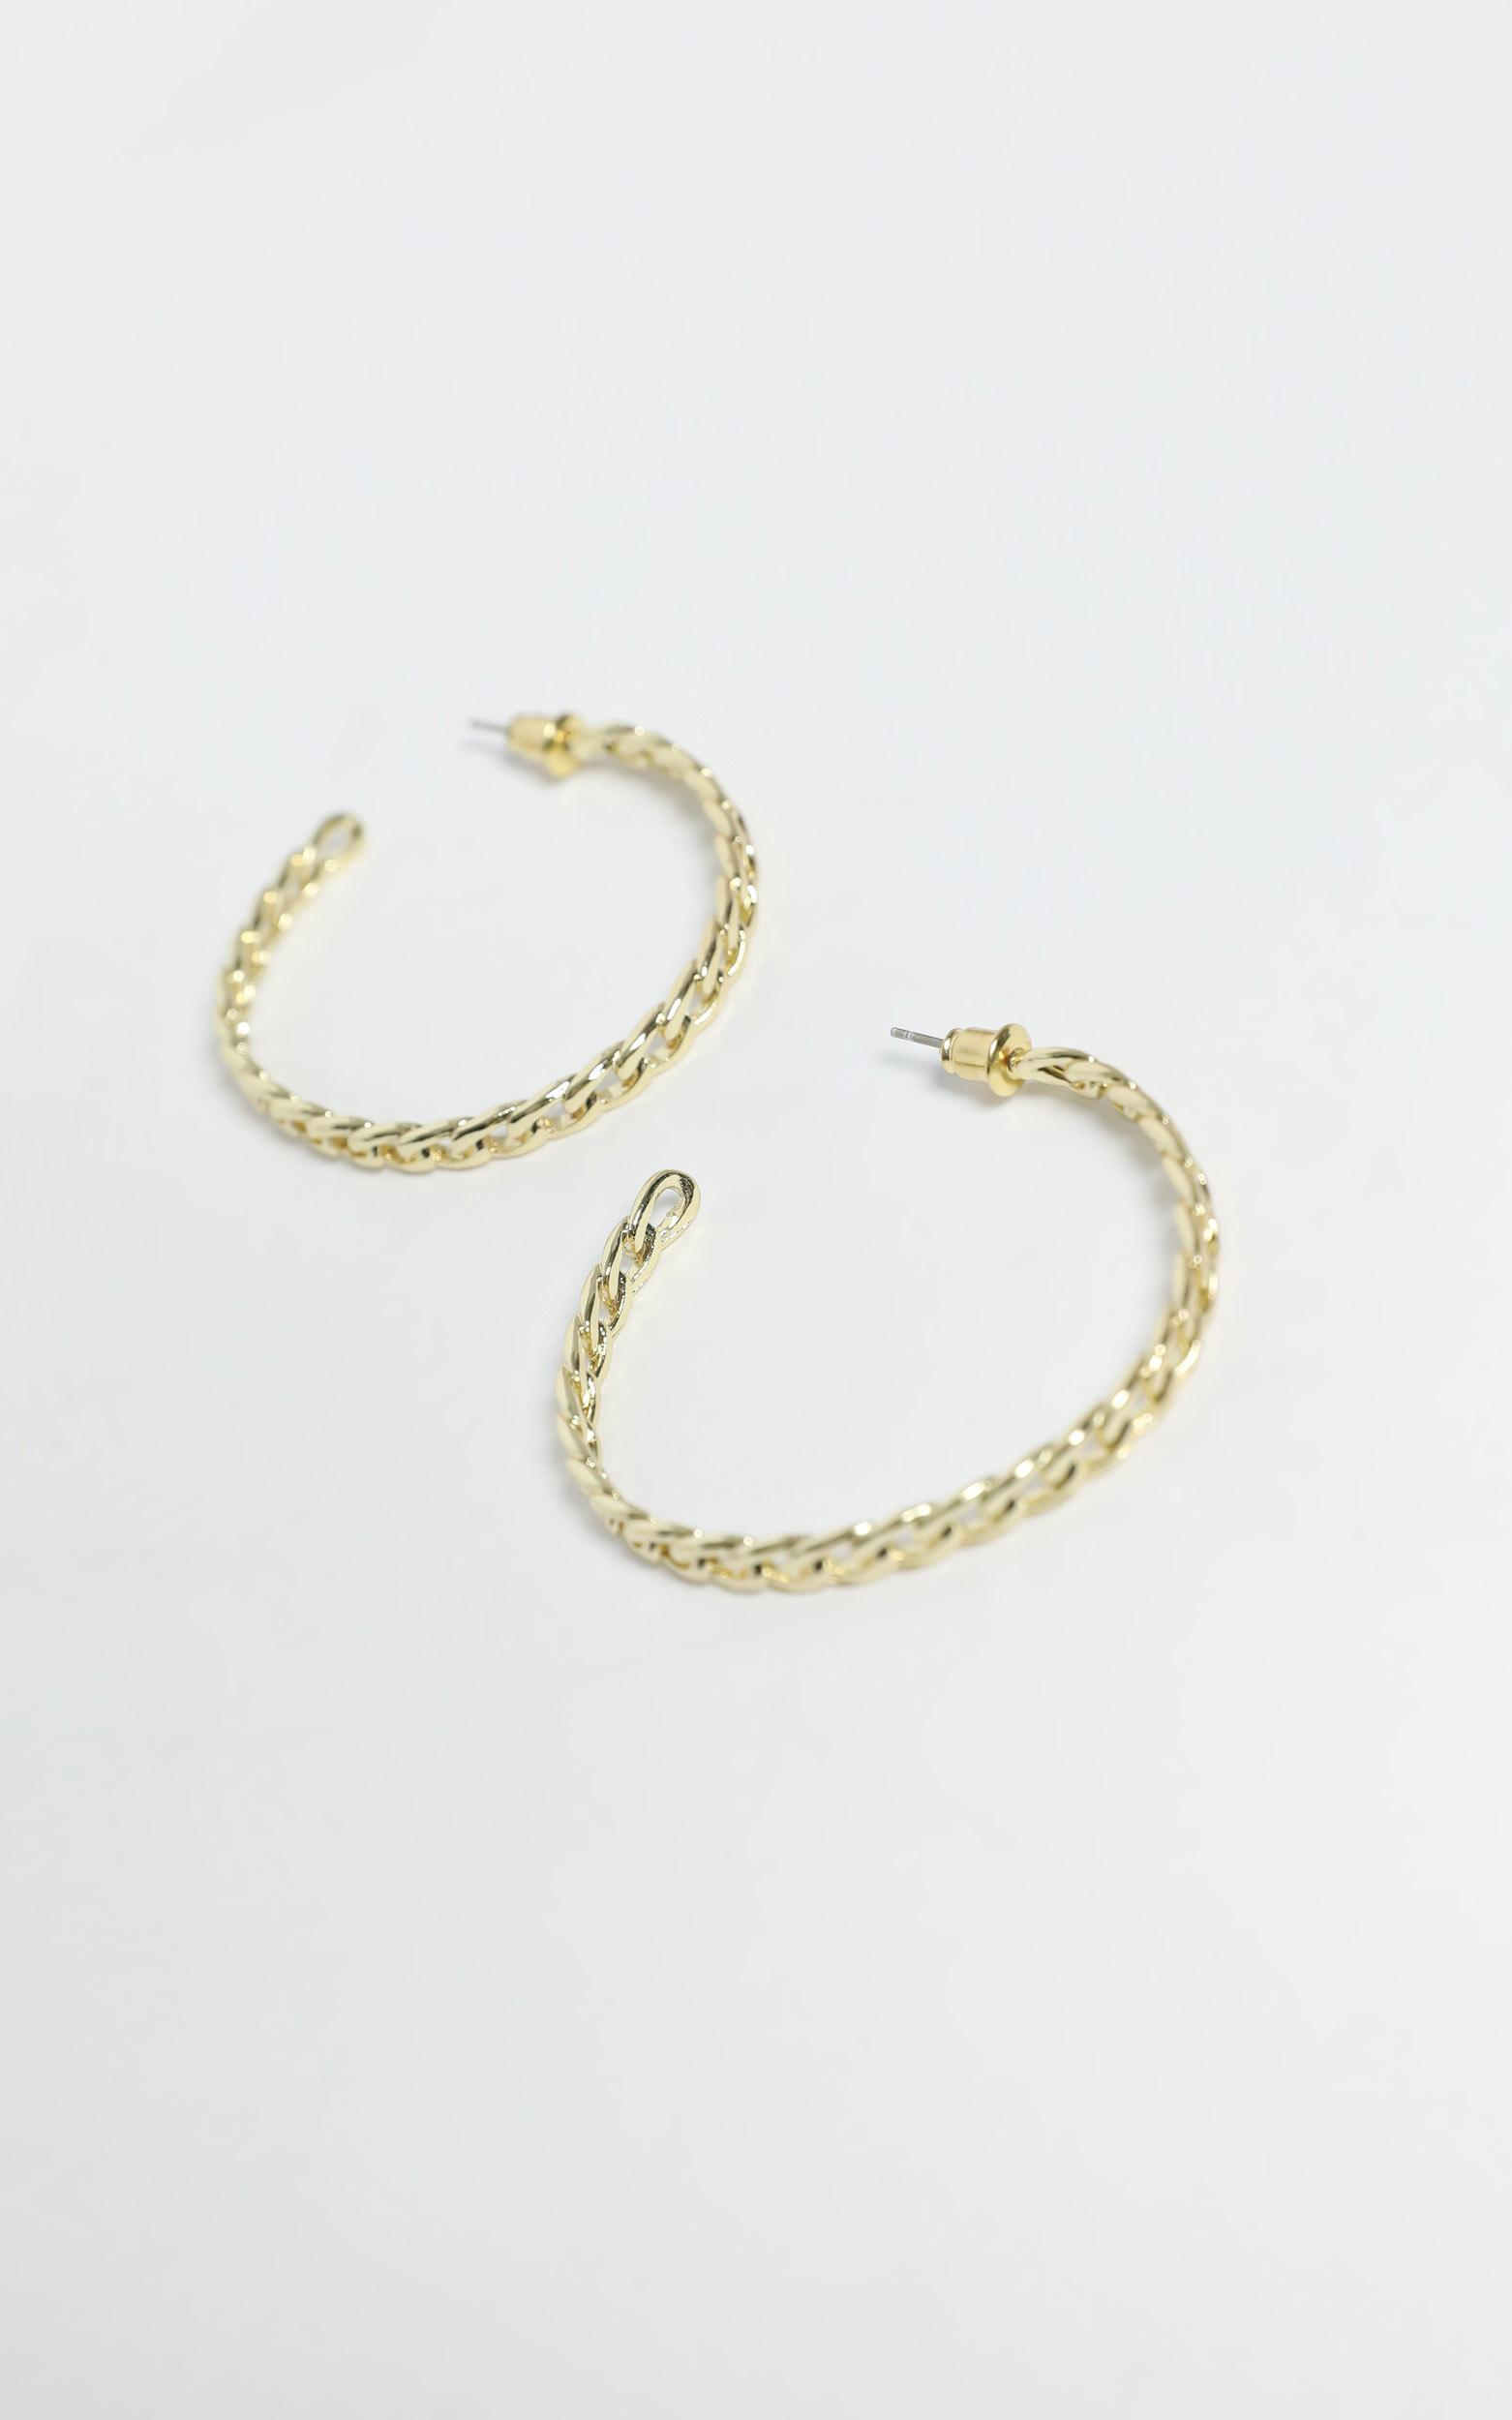 Gizela Earrings in Gold, , hi-res image number null